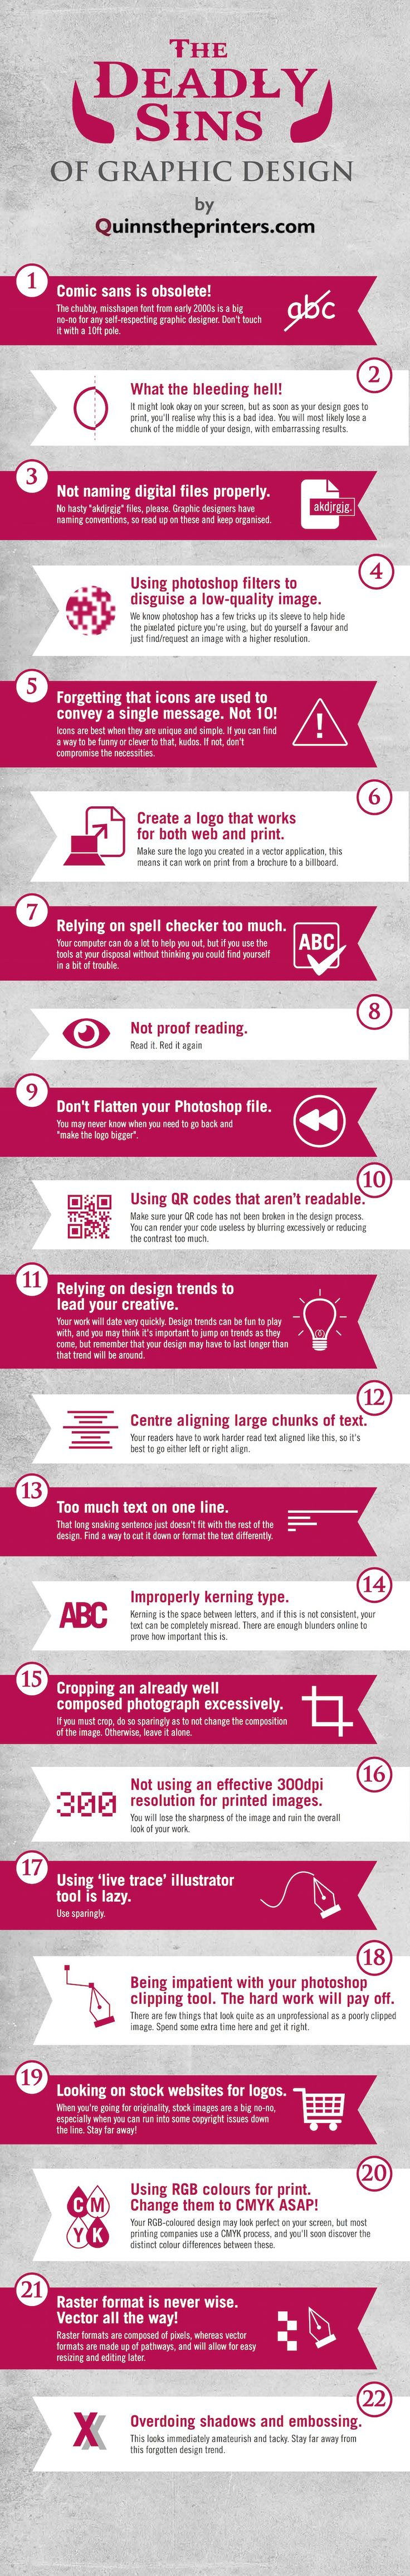 Graphic Design Sins: 22 Mistakes That Novice Designers Make